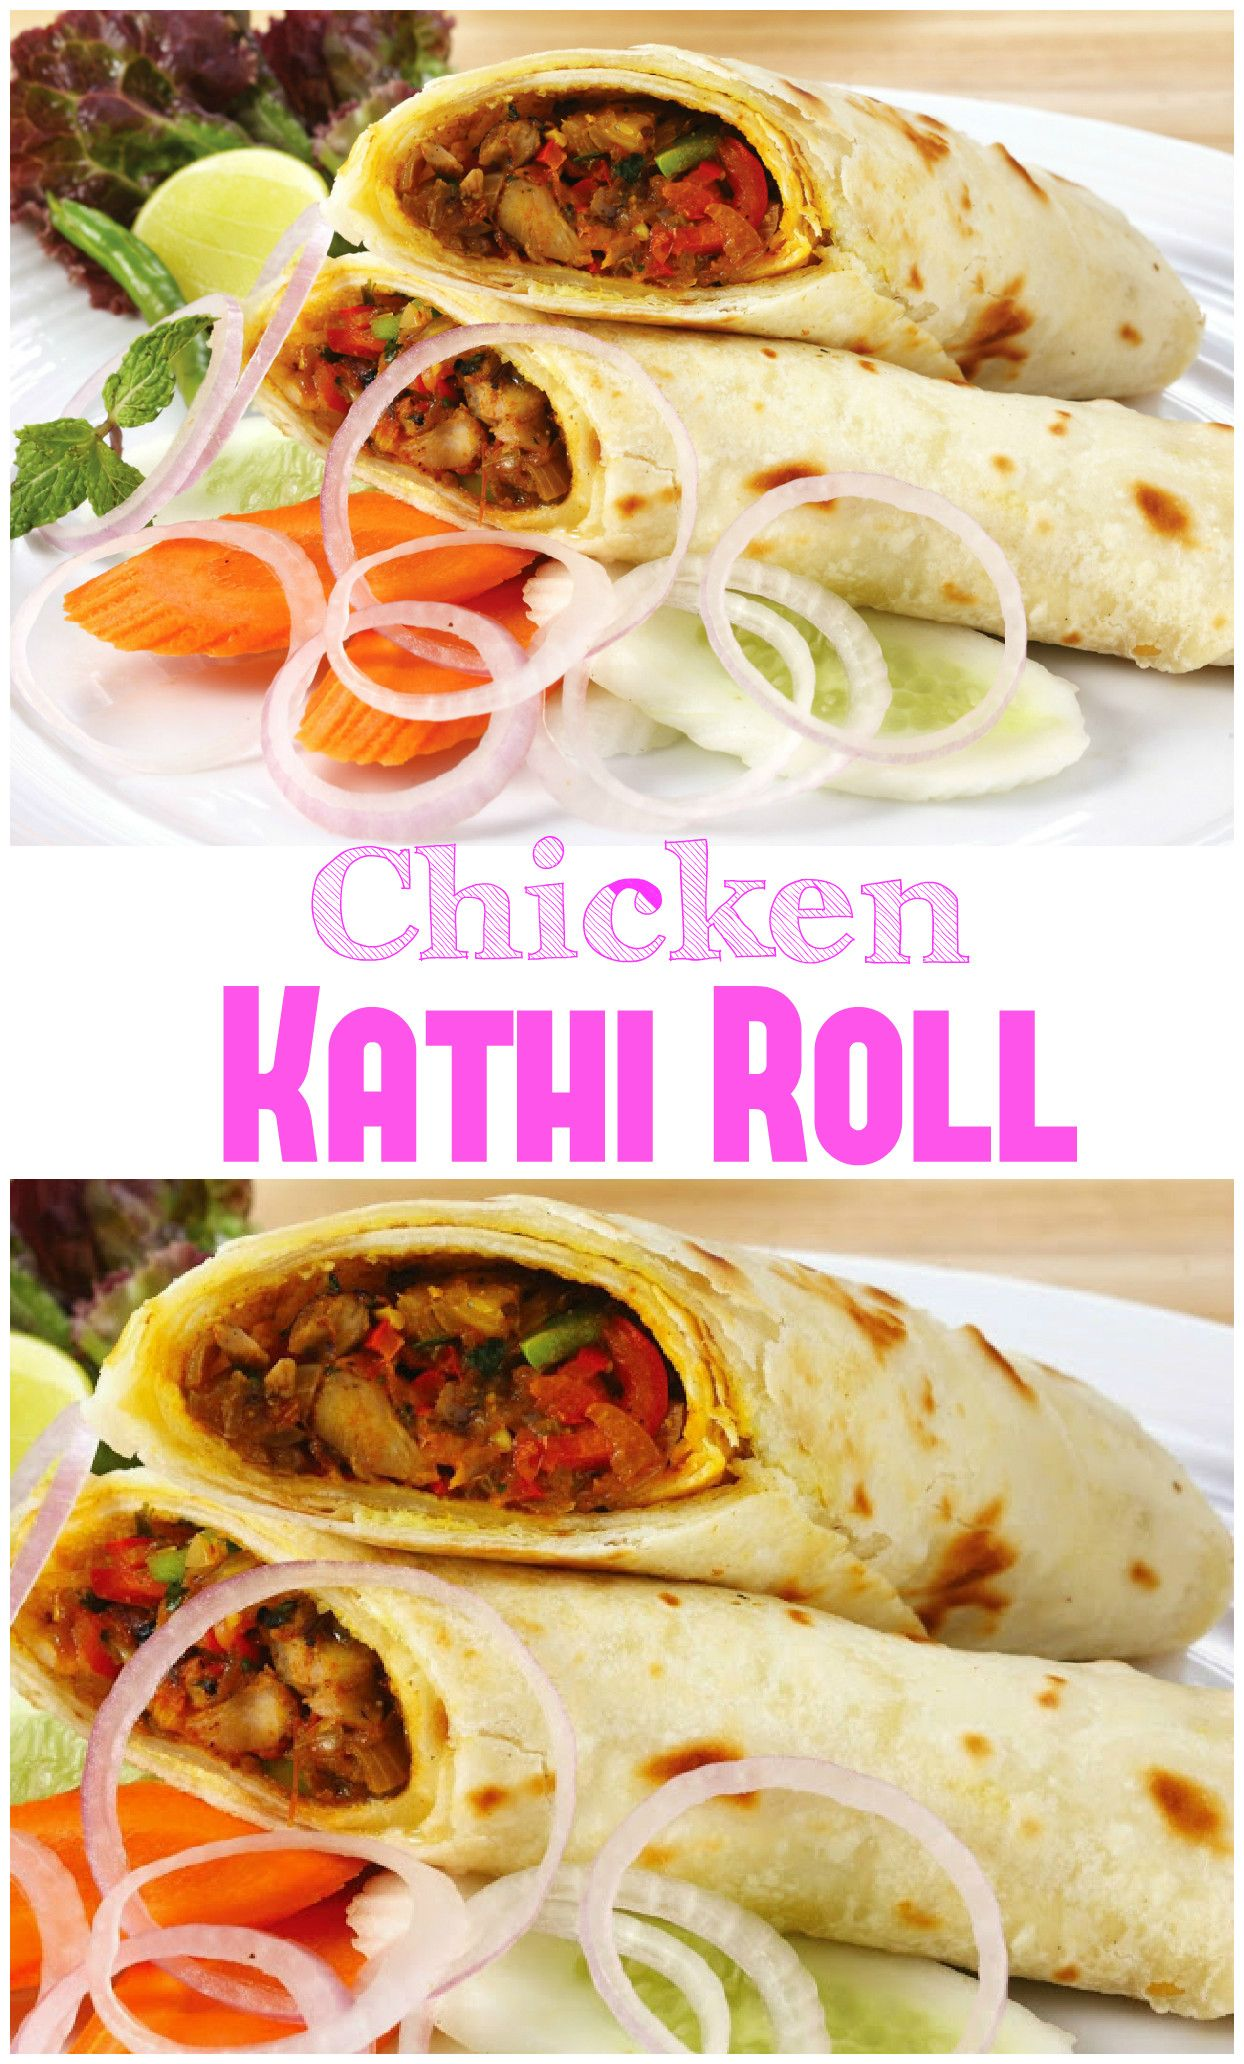 chicken kathi roll or chicken frankie is another famous